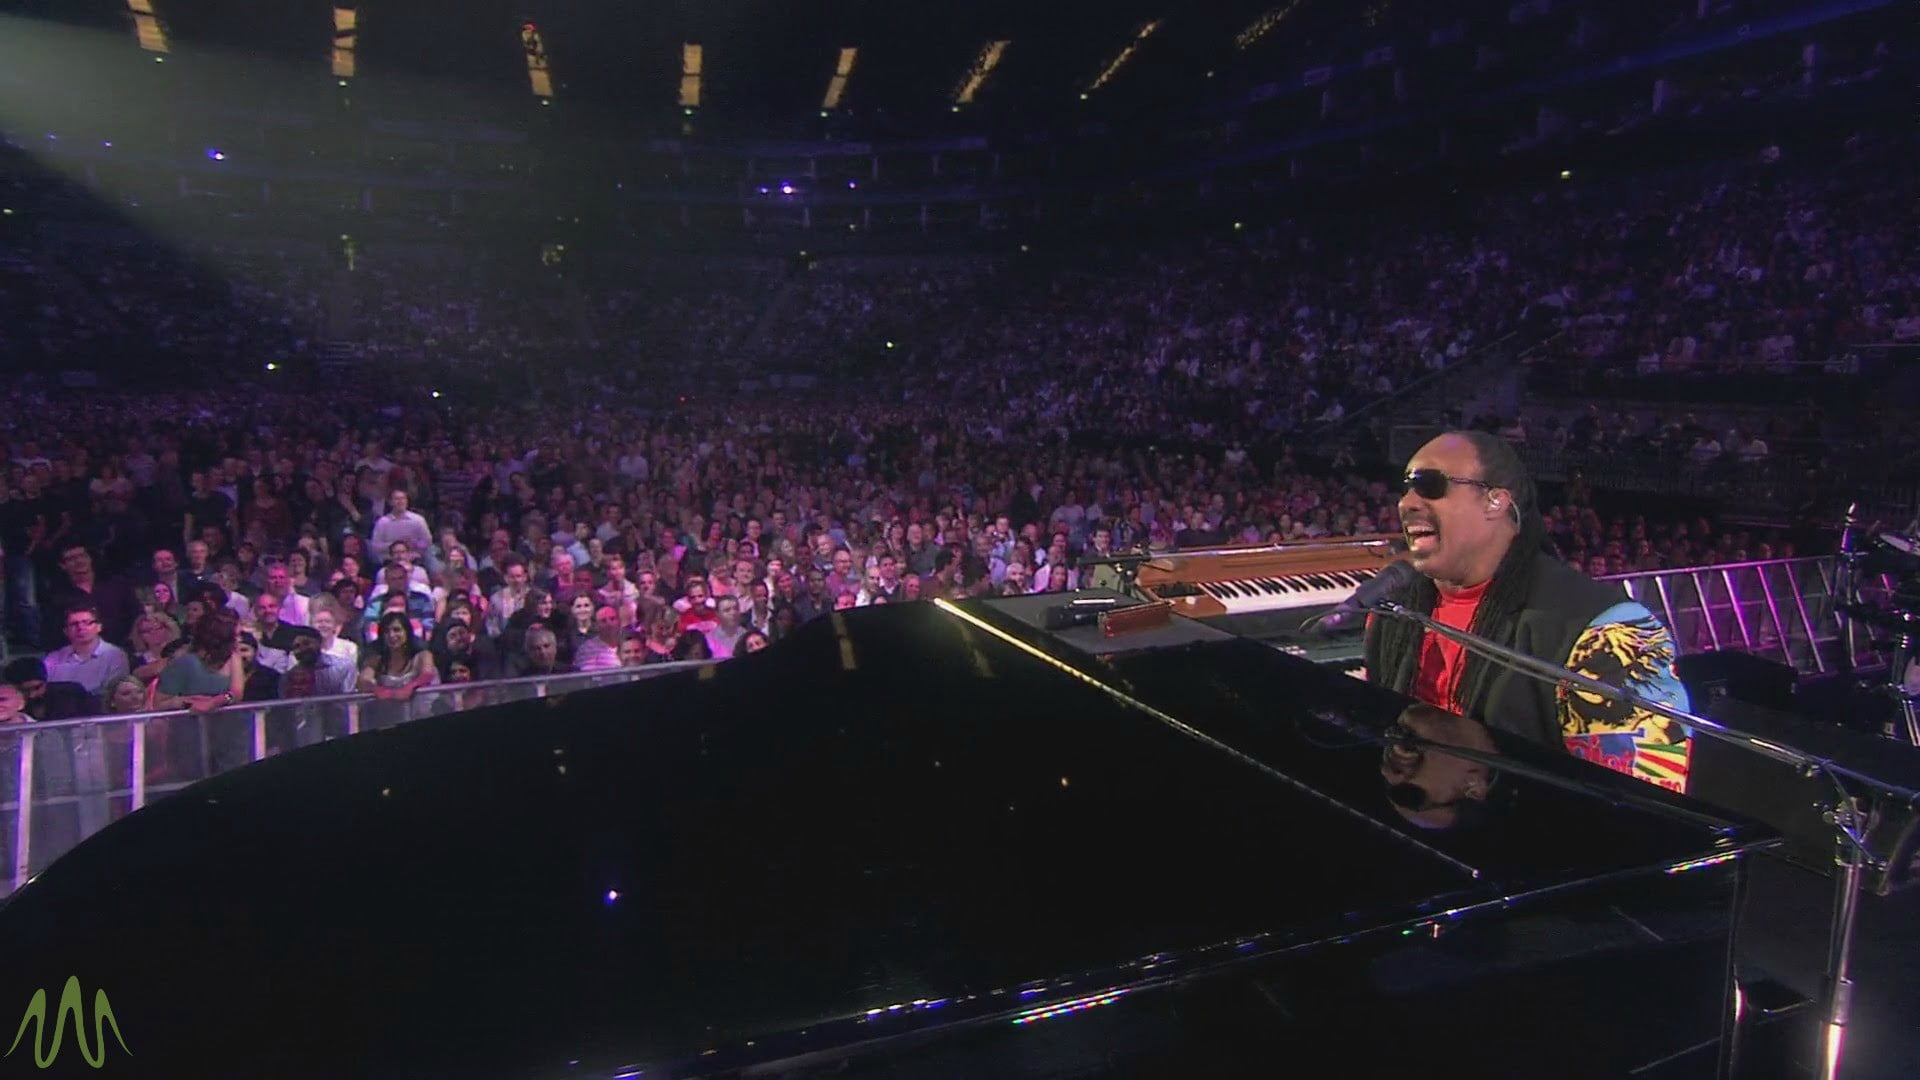 My First Concert: Why Stevie Wonder at Madison Square Garden Will Forever Resonate